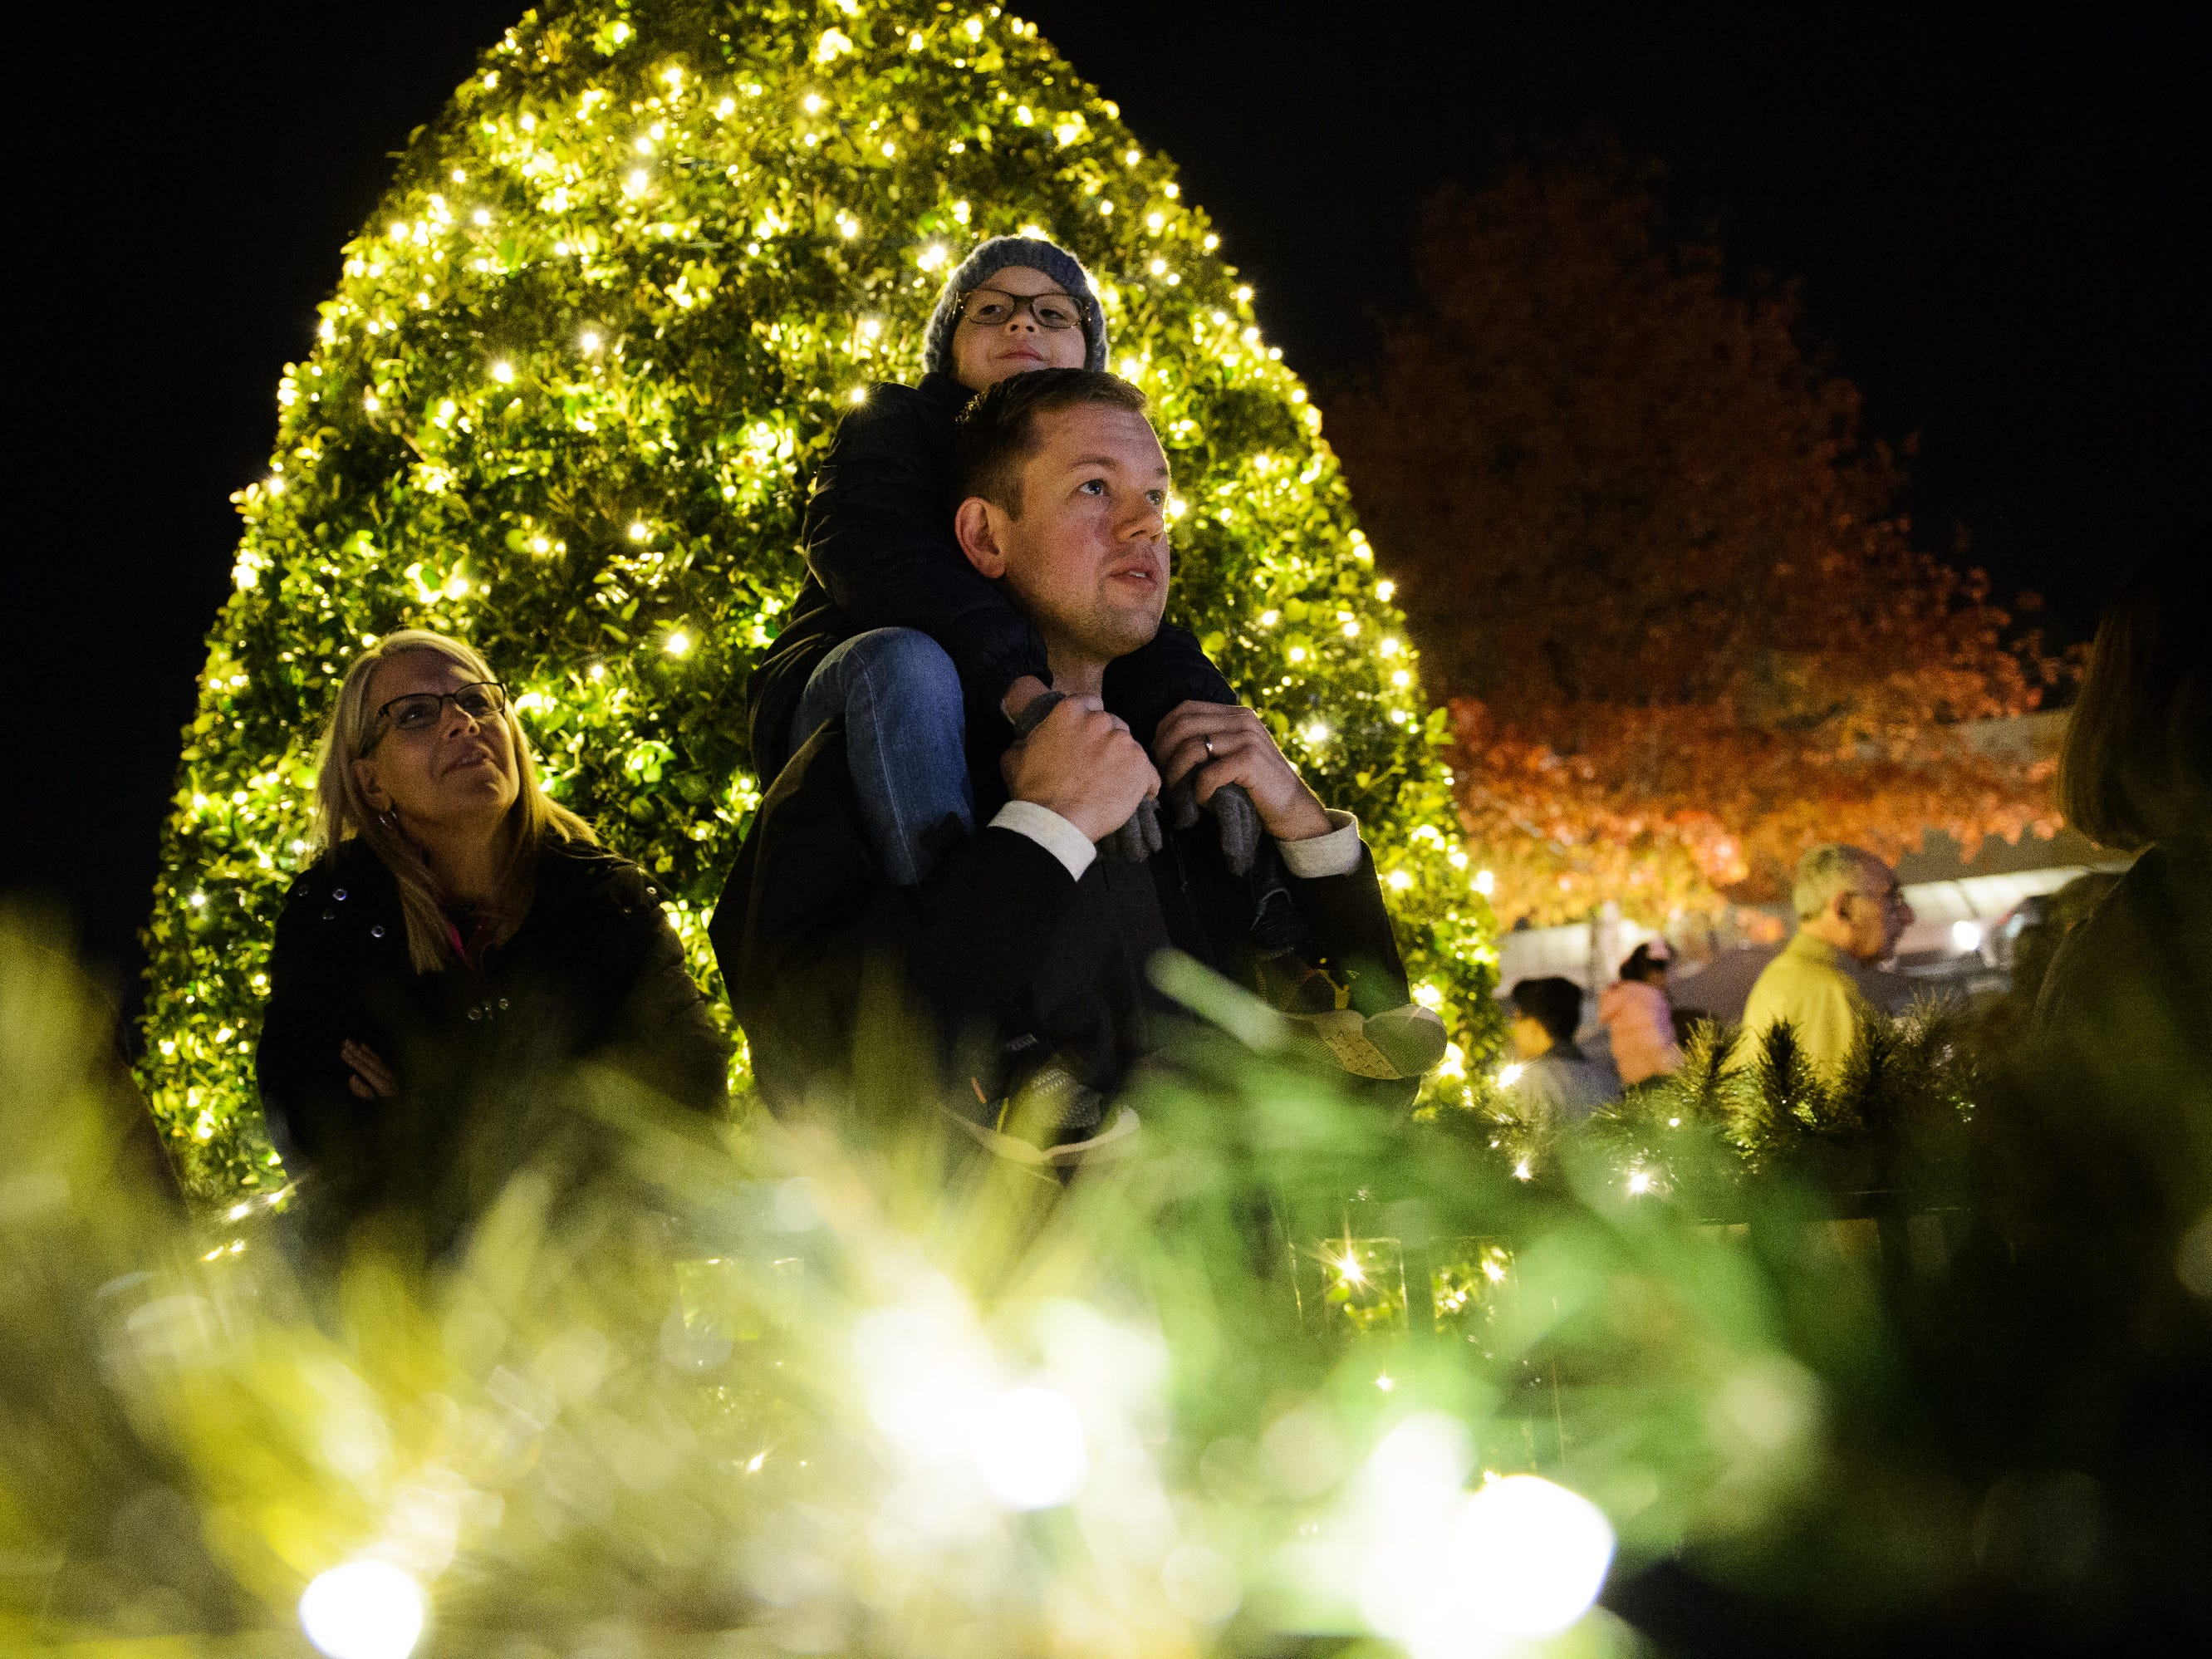 Chris Jenkins and his 6-year-old son Liam watch the choir sing at Bob Jones University's annual Christmas Celebration on Friday, Nov. 30, 2018.